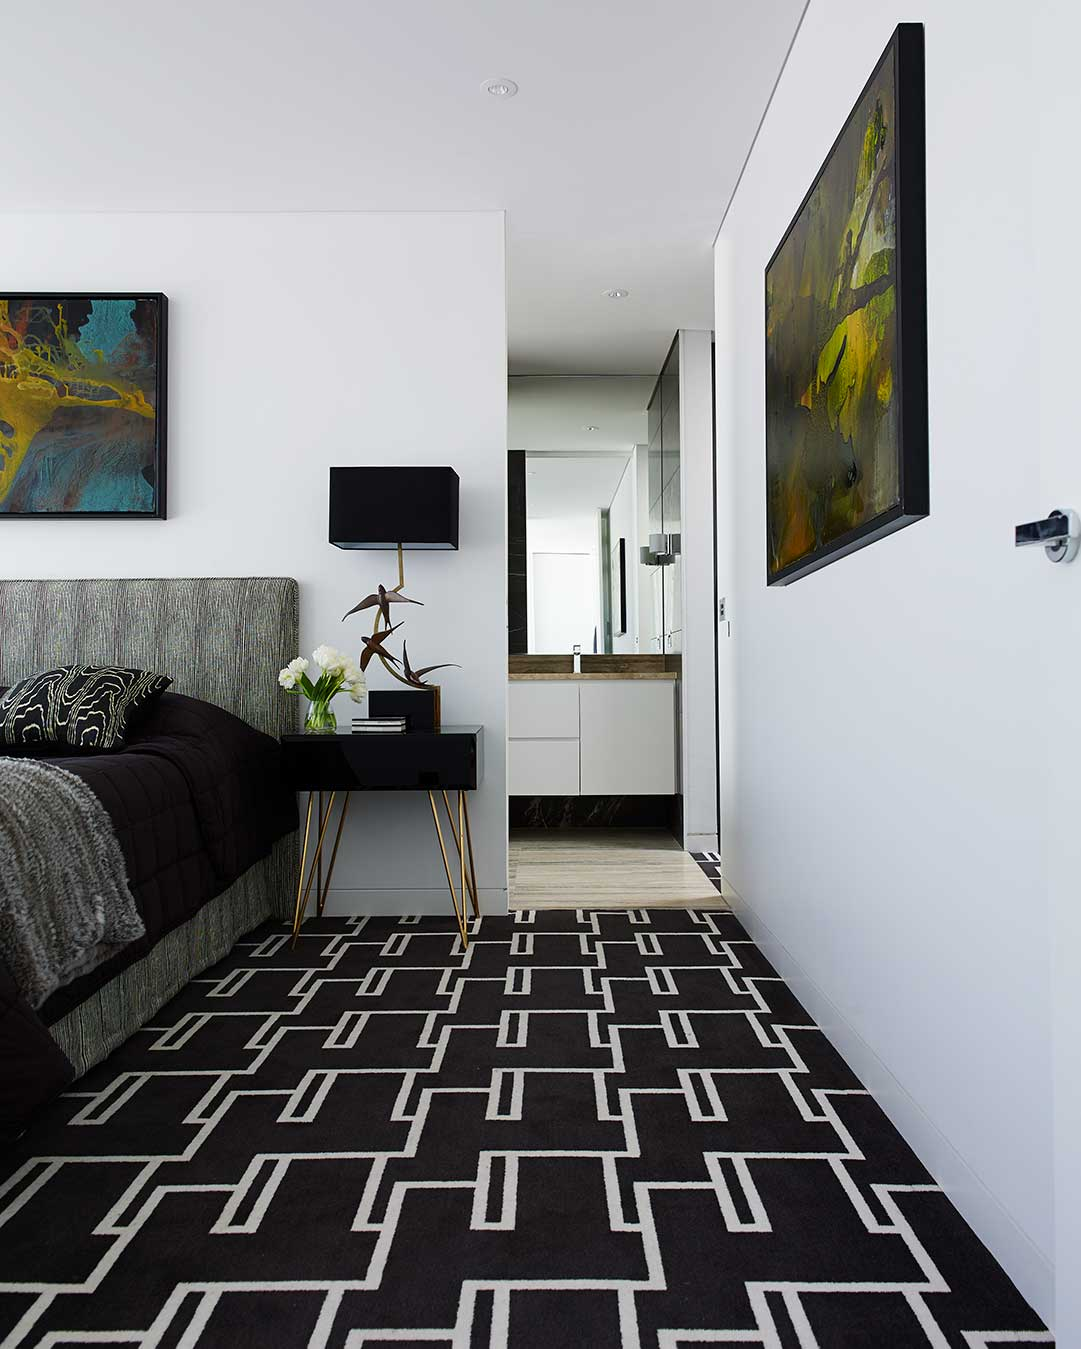 Bedroom view of Dianne black and white patterned Axminster carpet by Greg Natale